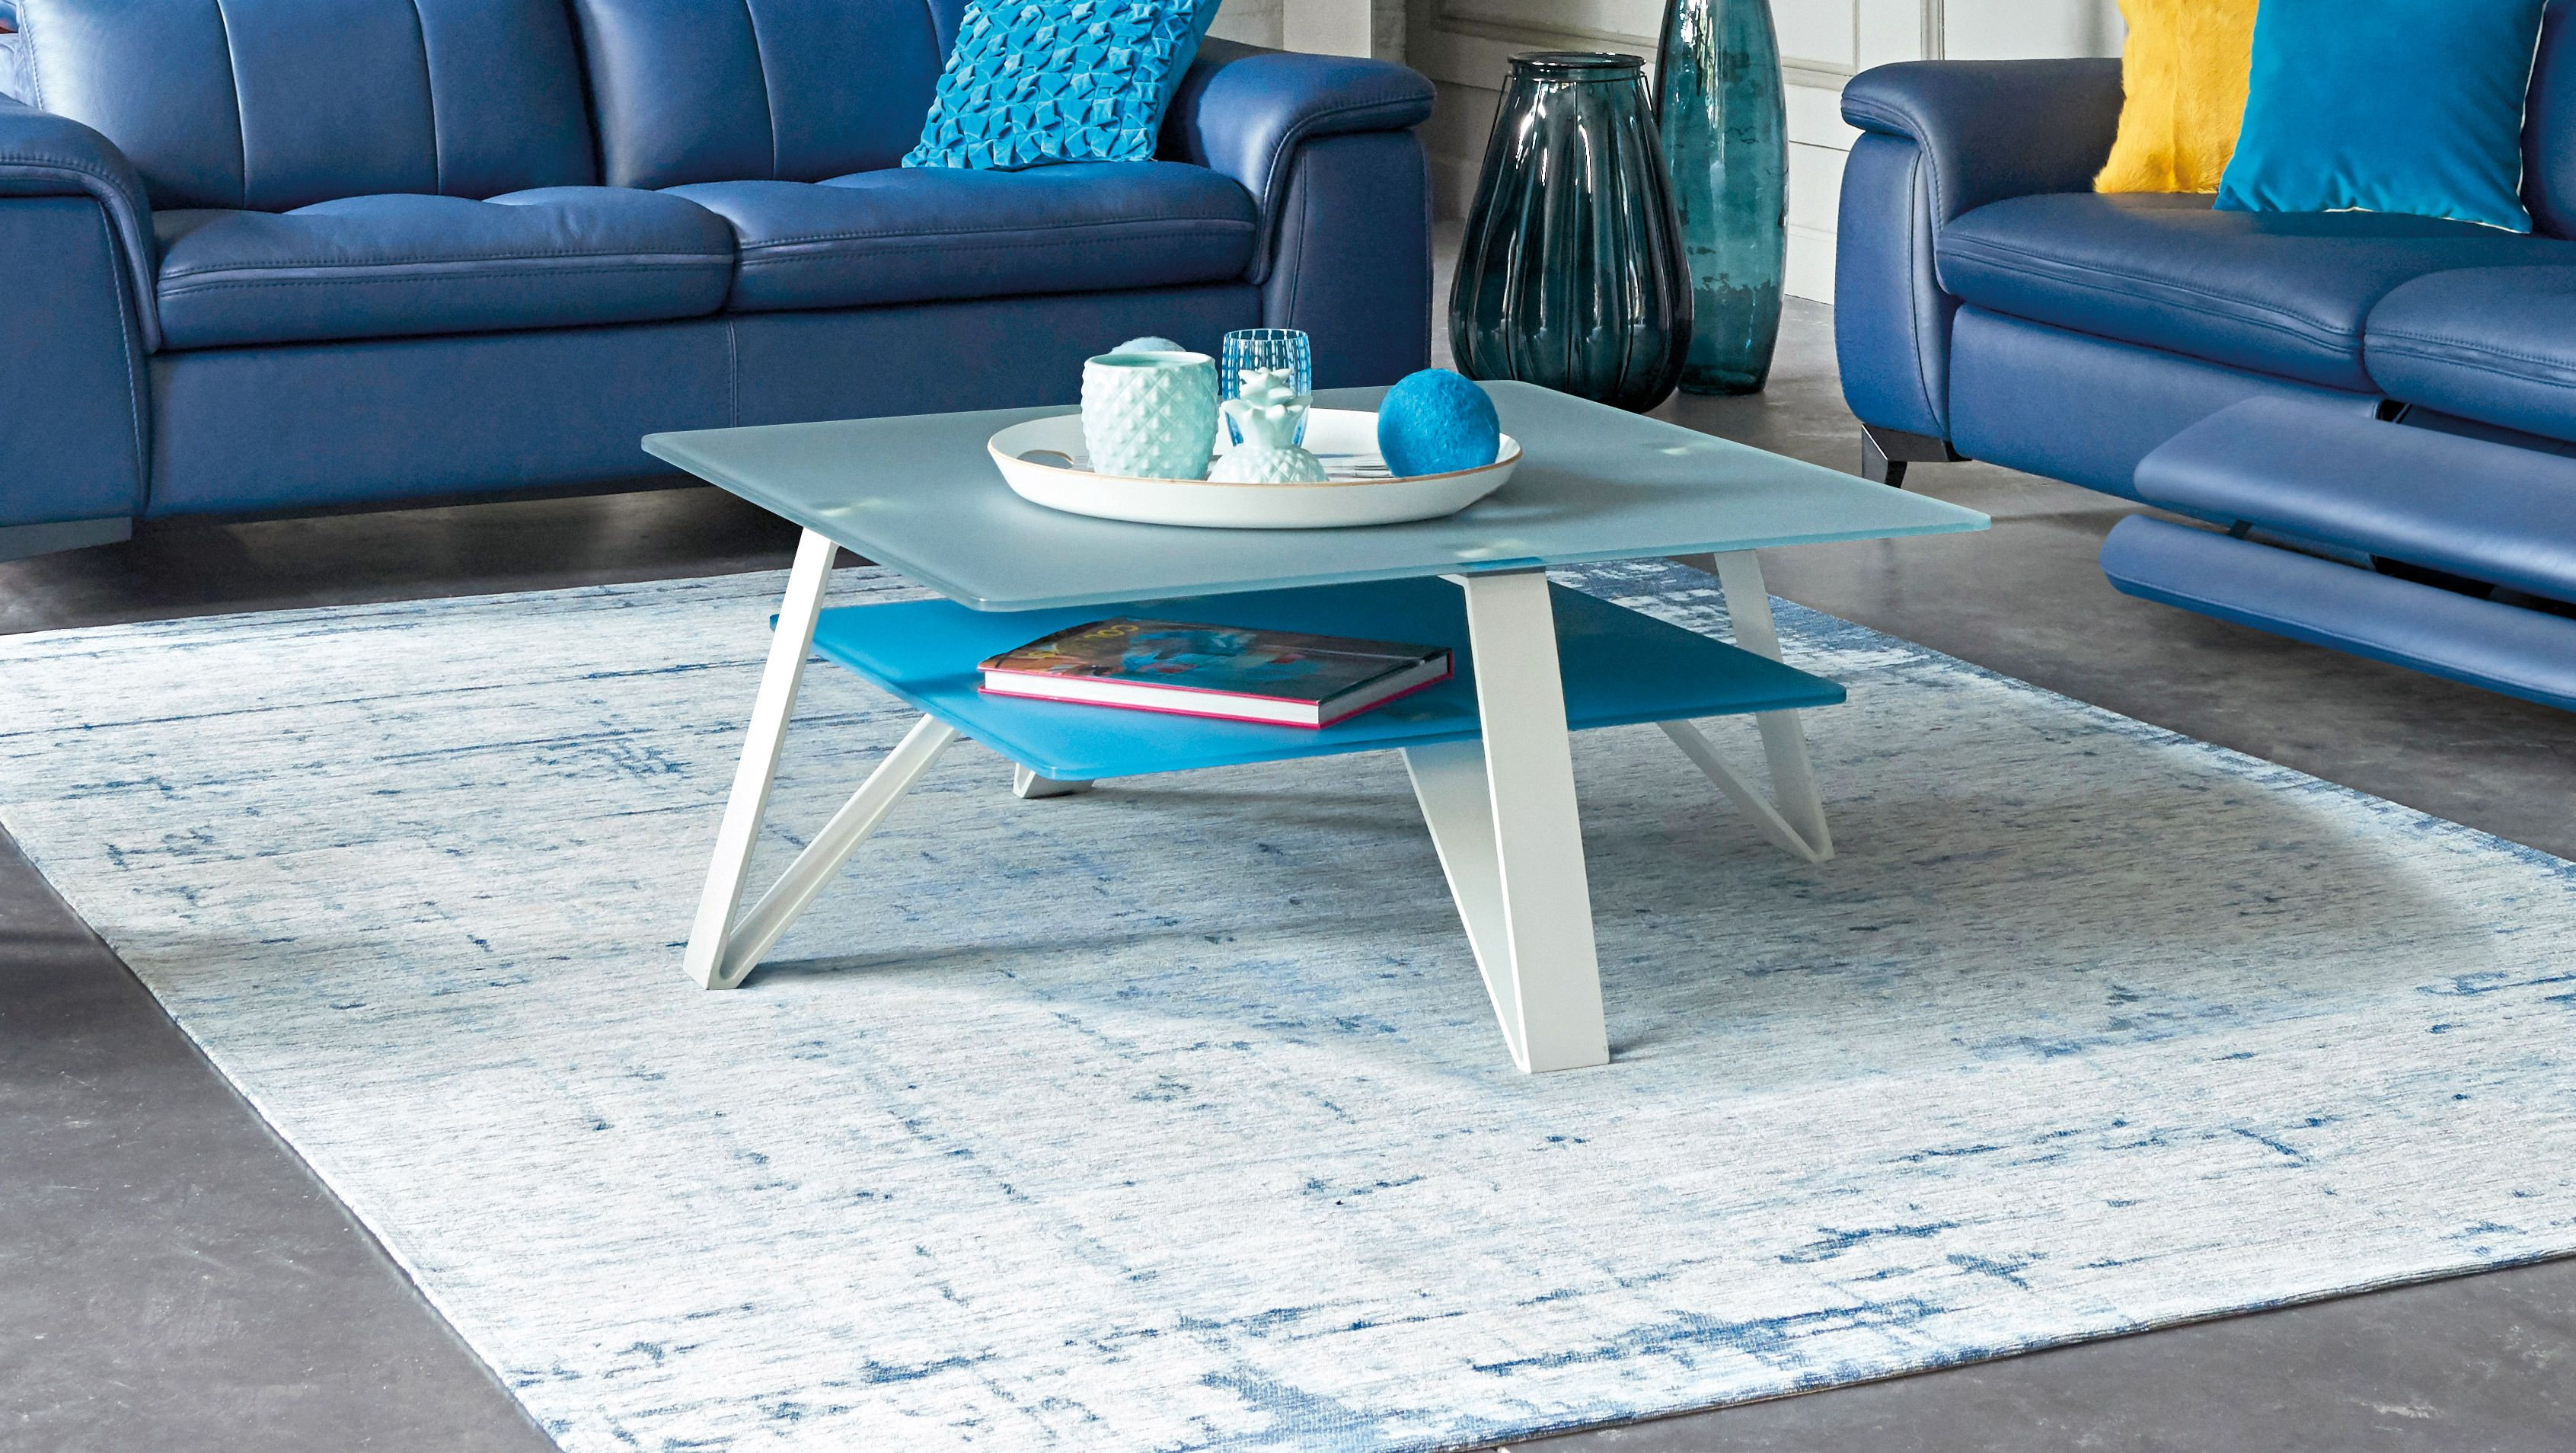 Table Basse Manhattan En Exclusivite Dans Vos Magasins Monsieur Meuble En France Monsieur Meuble Table Basse Table